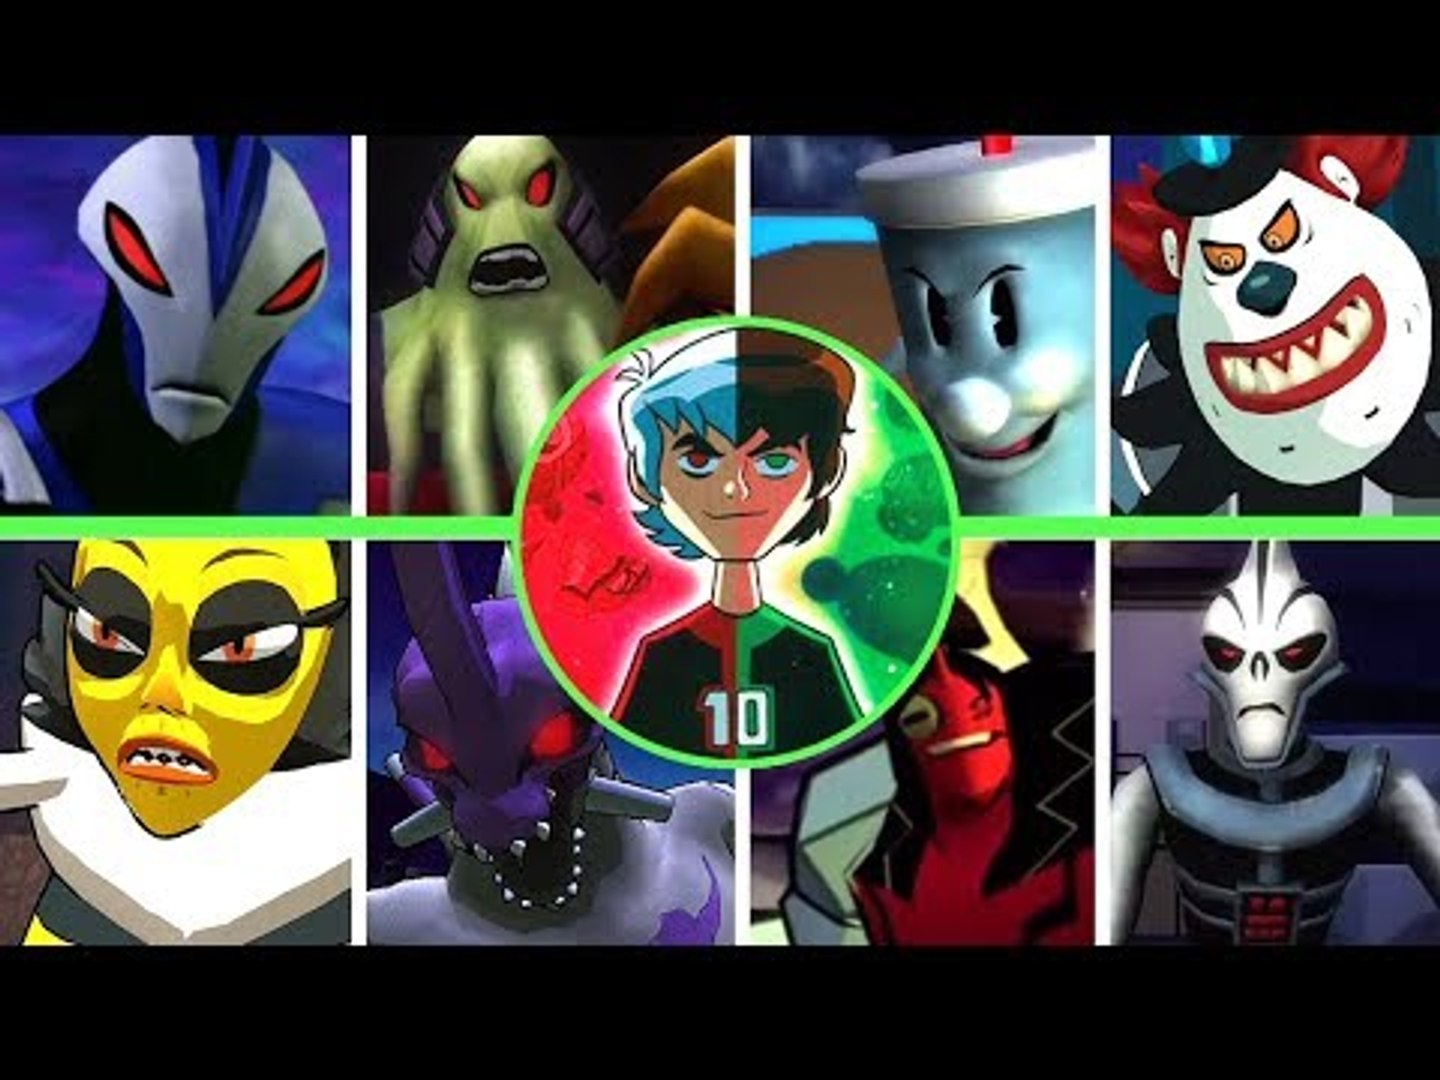 Ben 10 Boss Rush Compilation (All Bosses from All Games)